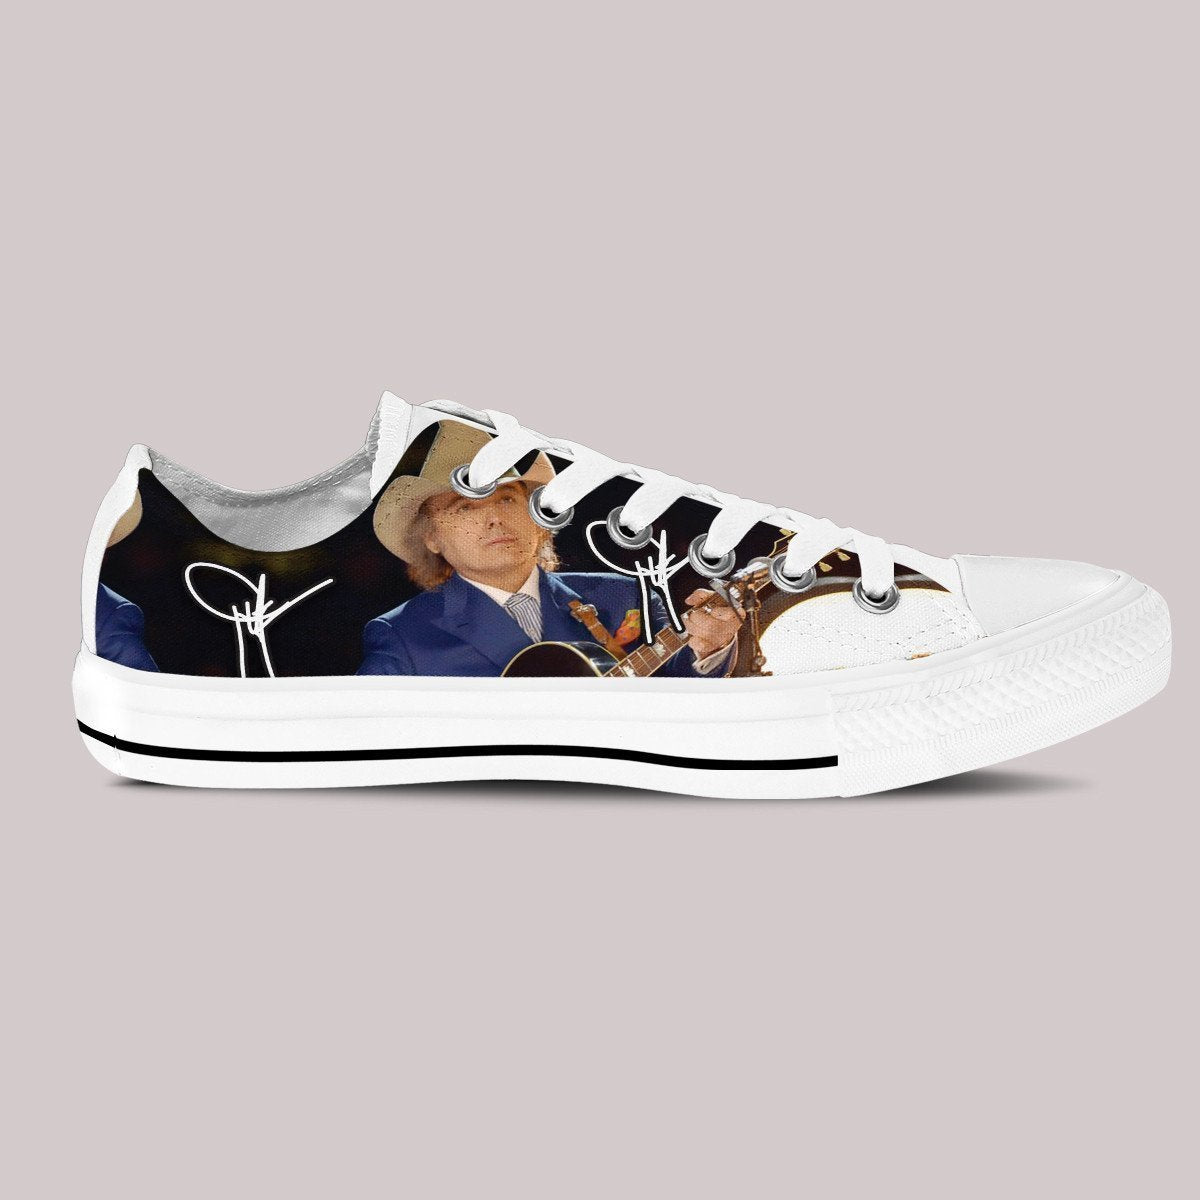 dwight yoakam ladies low cut sneakers